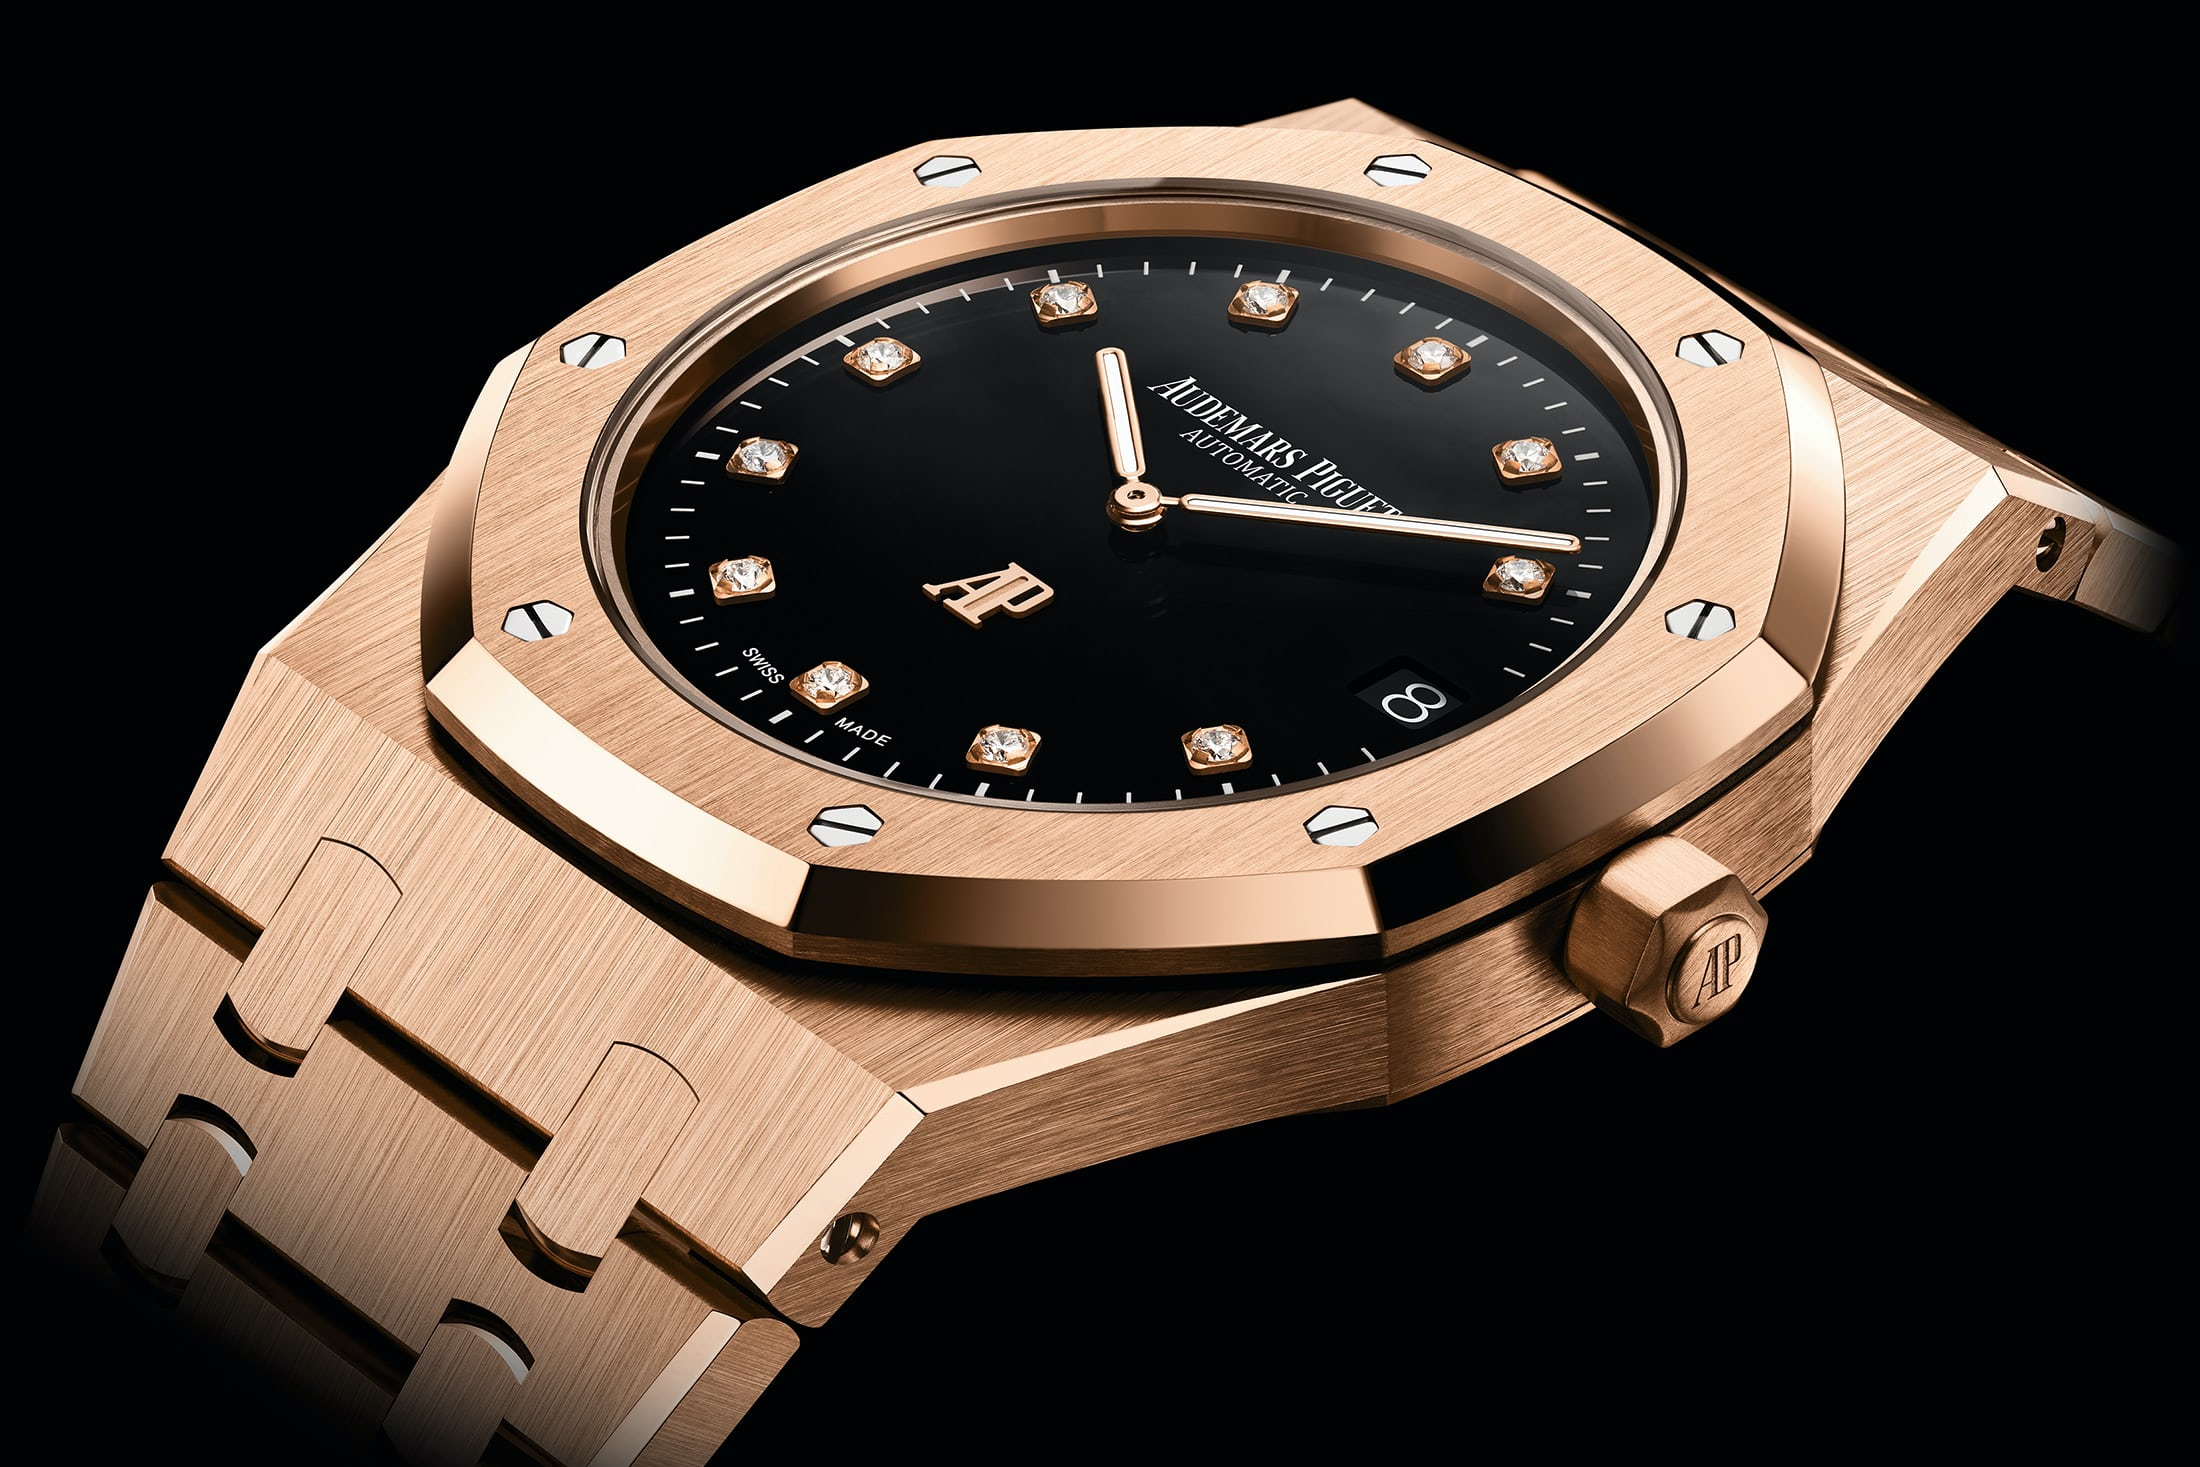 Audemars Piguet Royal Oak Jumbo Extra-Thin with onyx dial